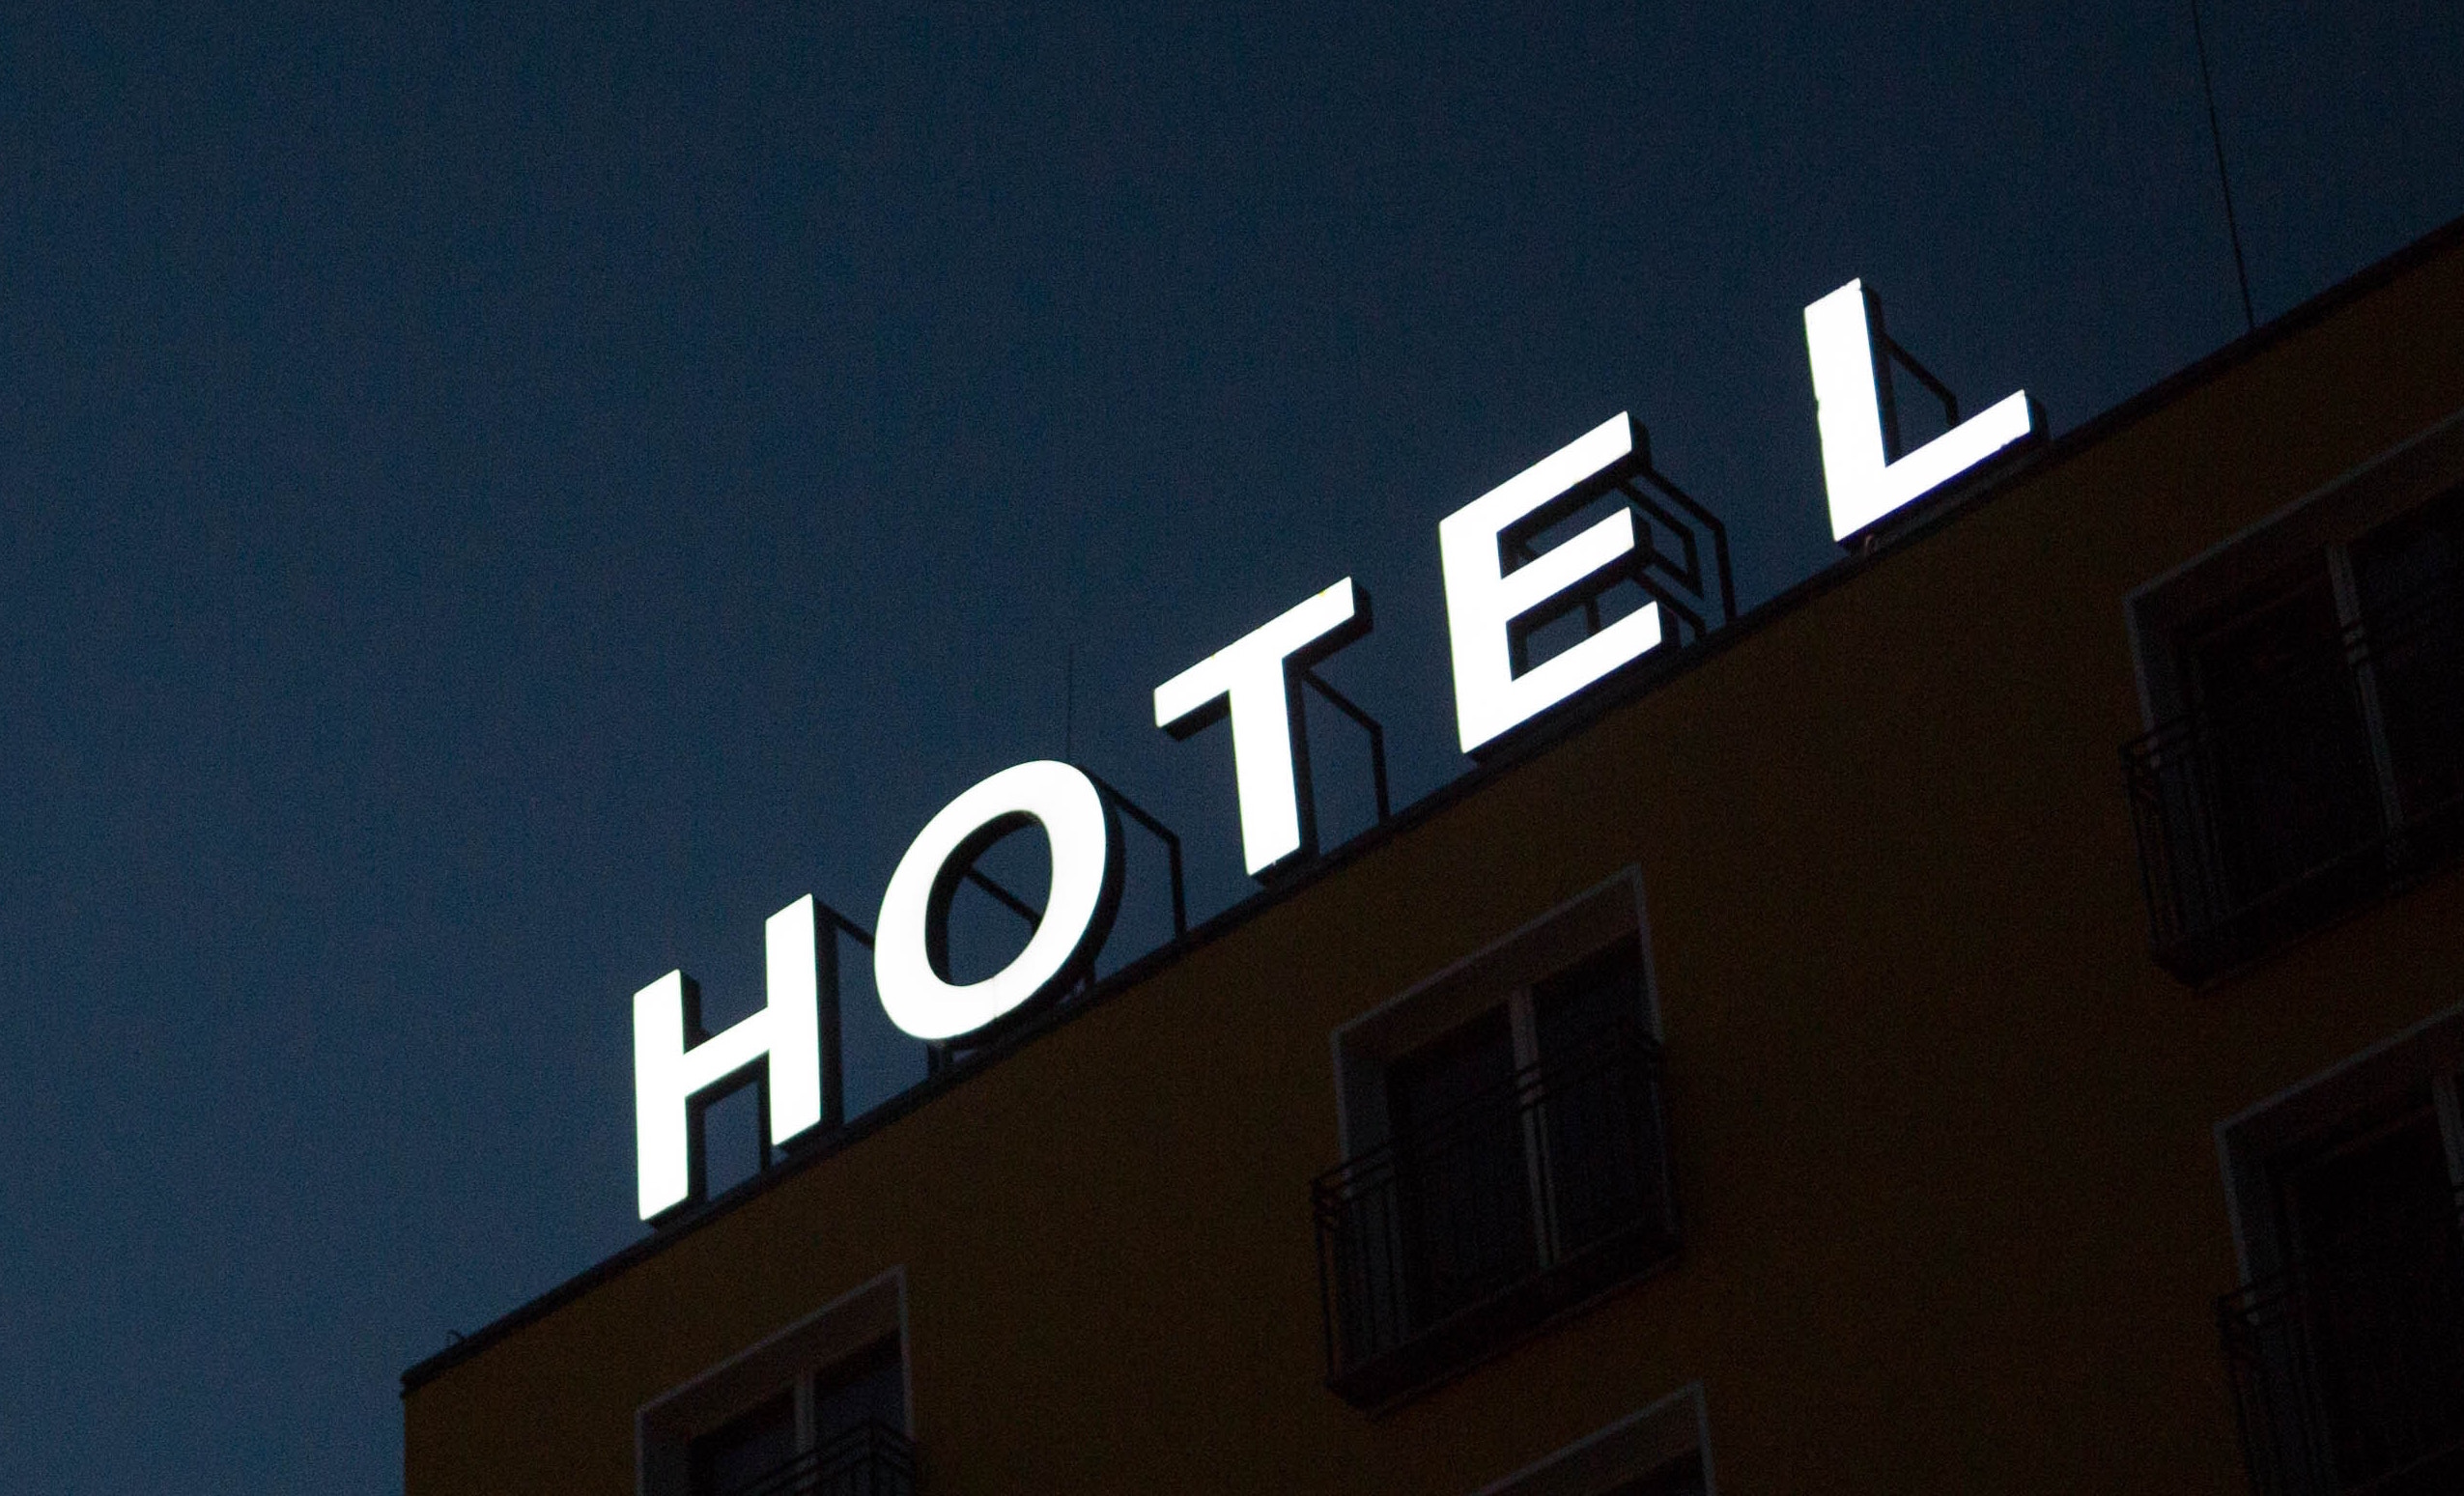 Sign on top of a hotel - saying Hotel